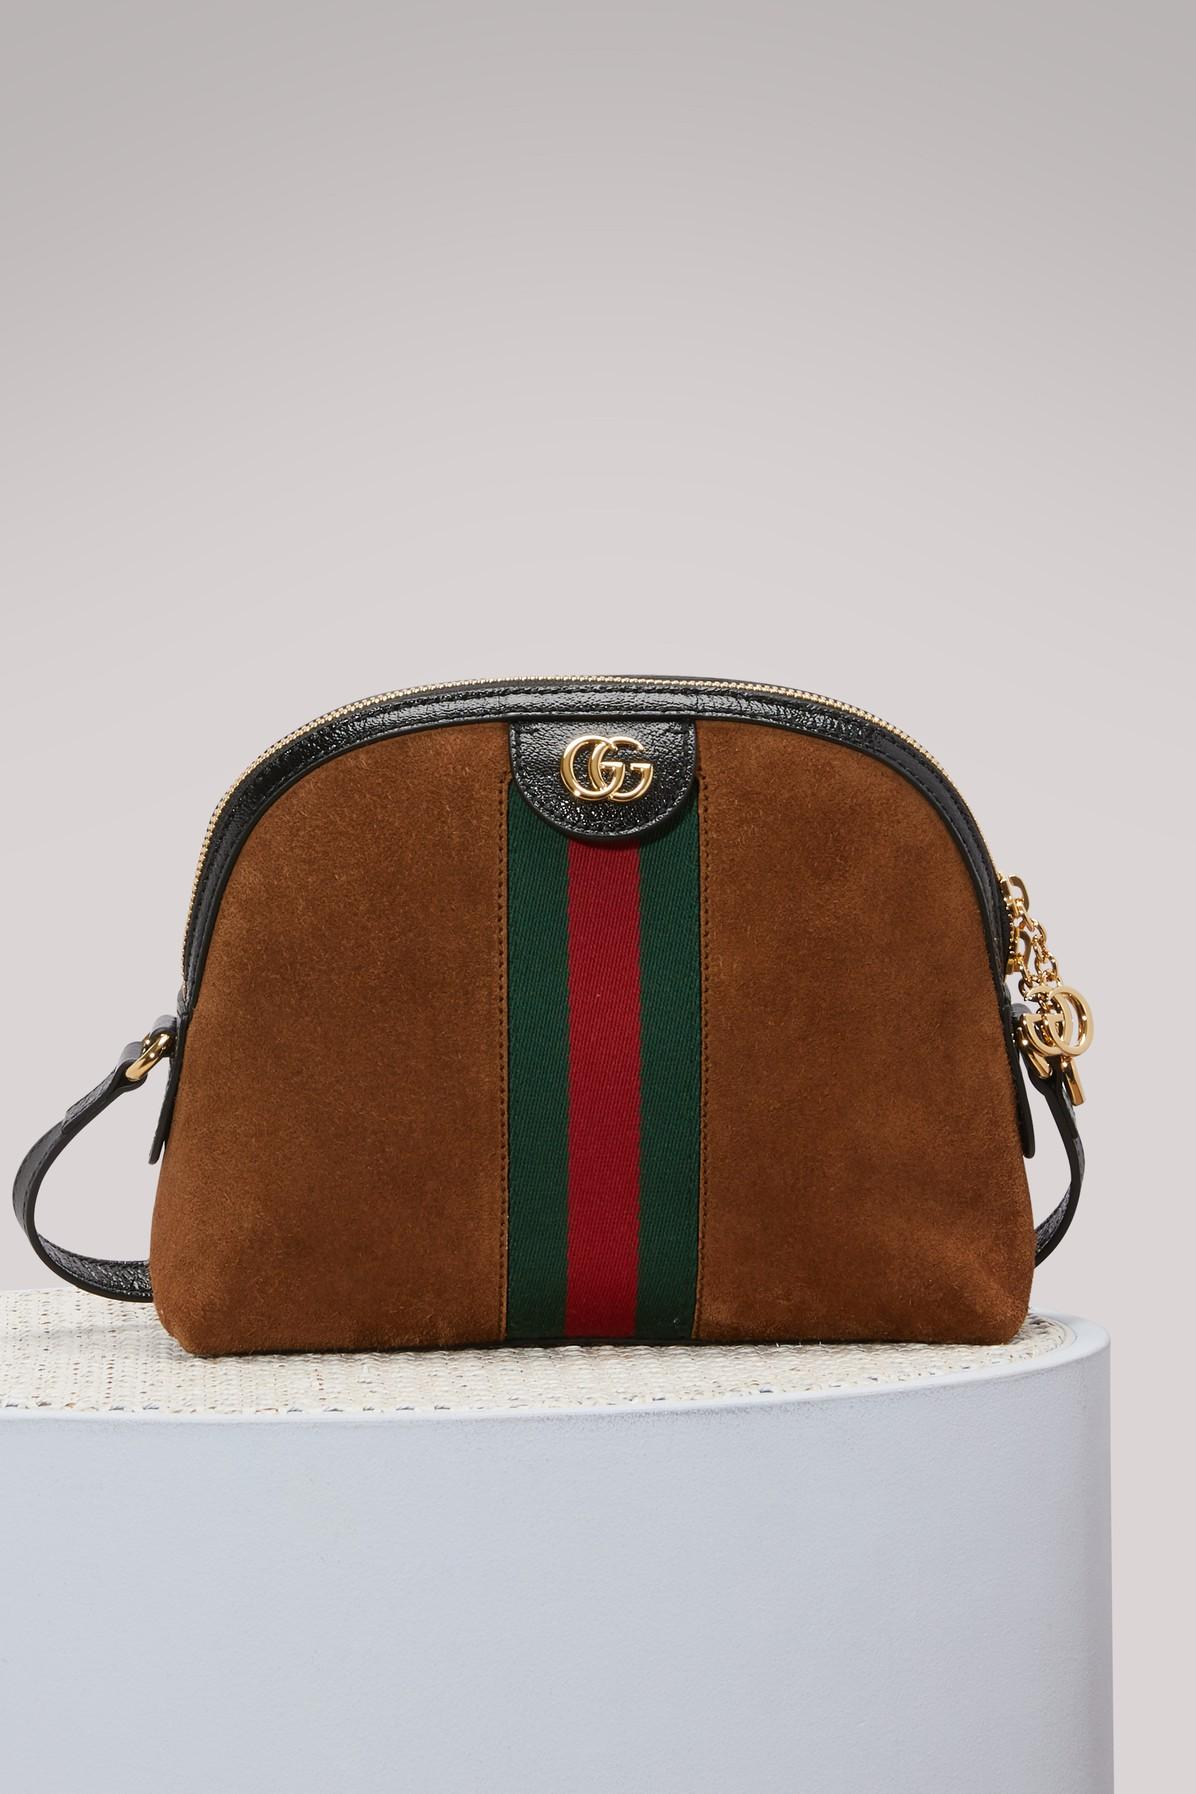 ca8dfe14267 Gucci Ophidia Small Shoulder Bag In Brown